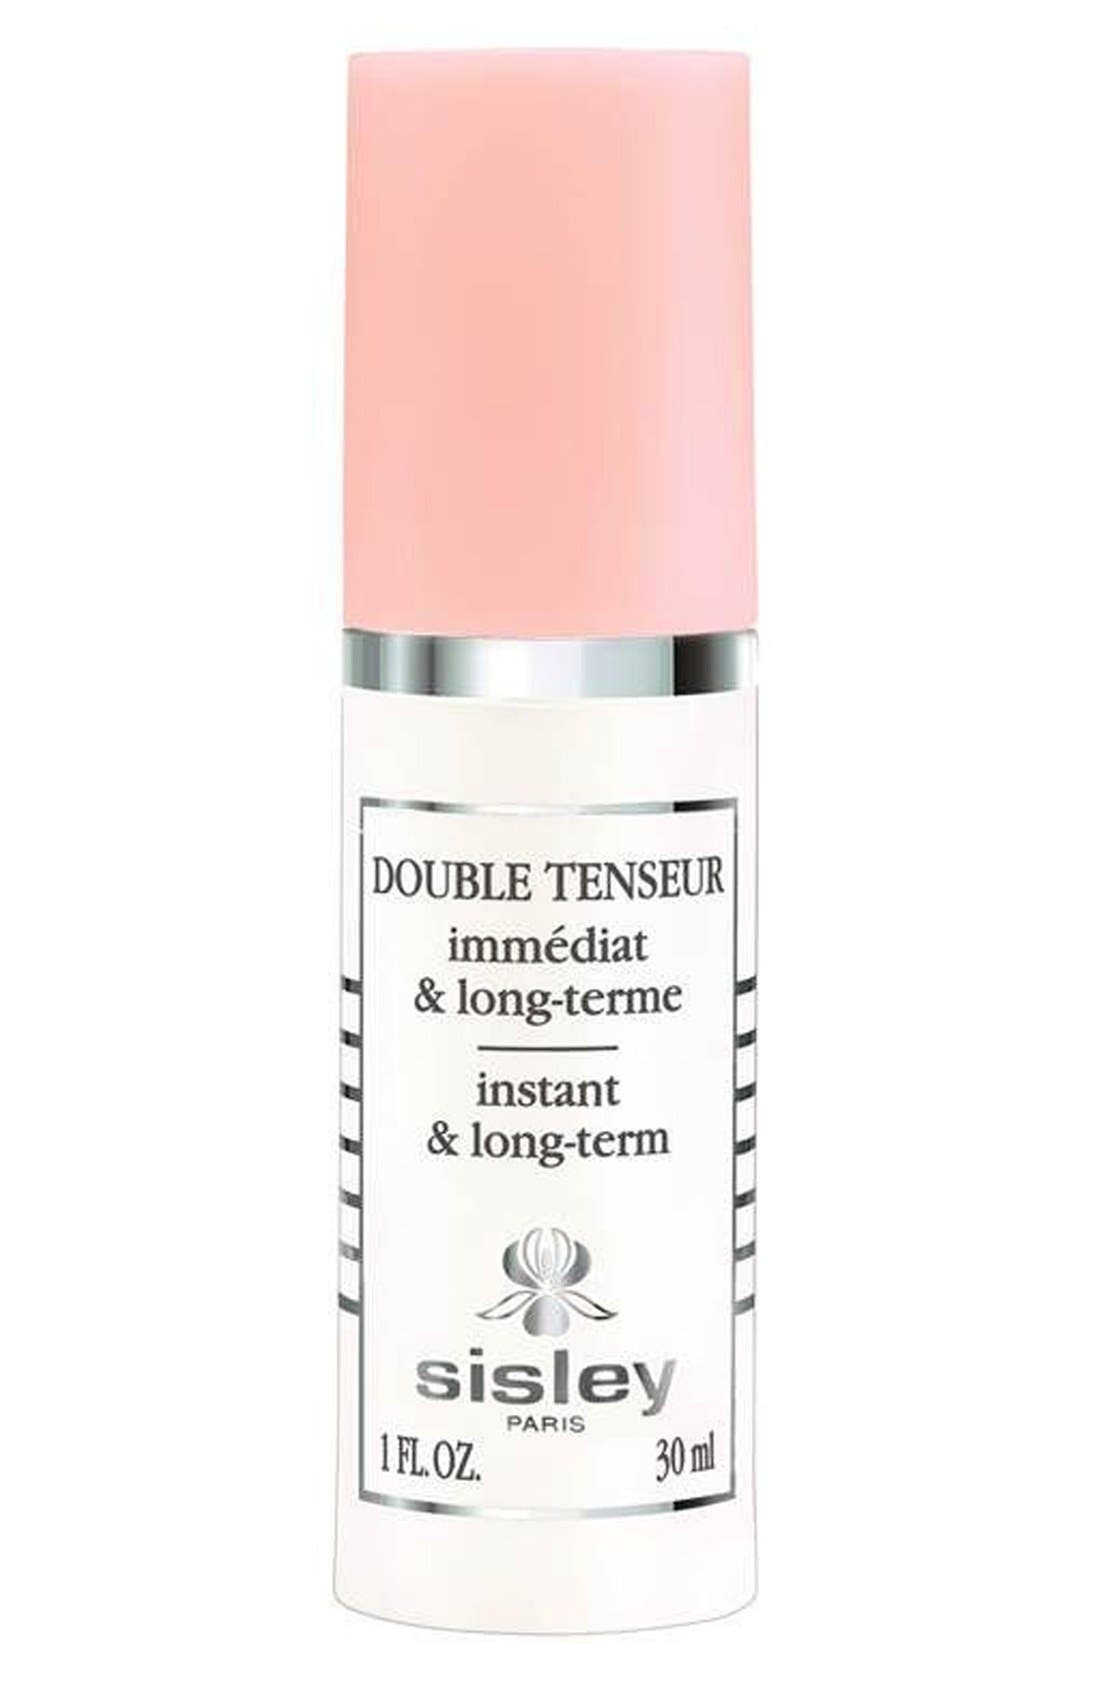 Sisley Paris 'Double Tenseur' Moisturizing Gel